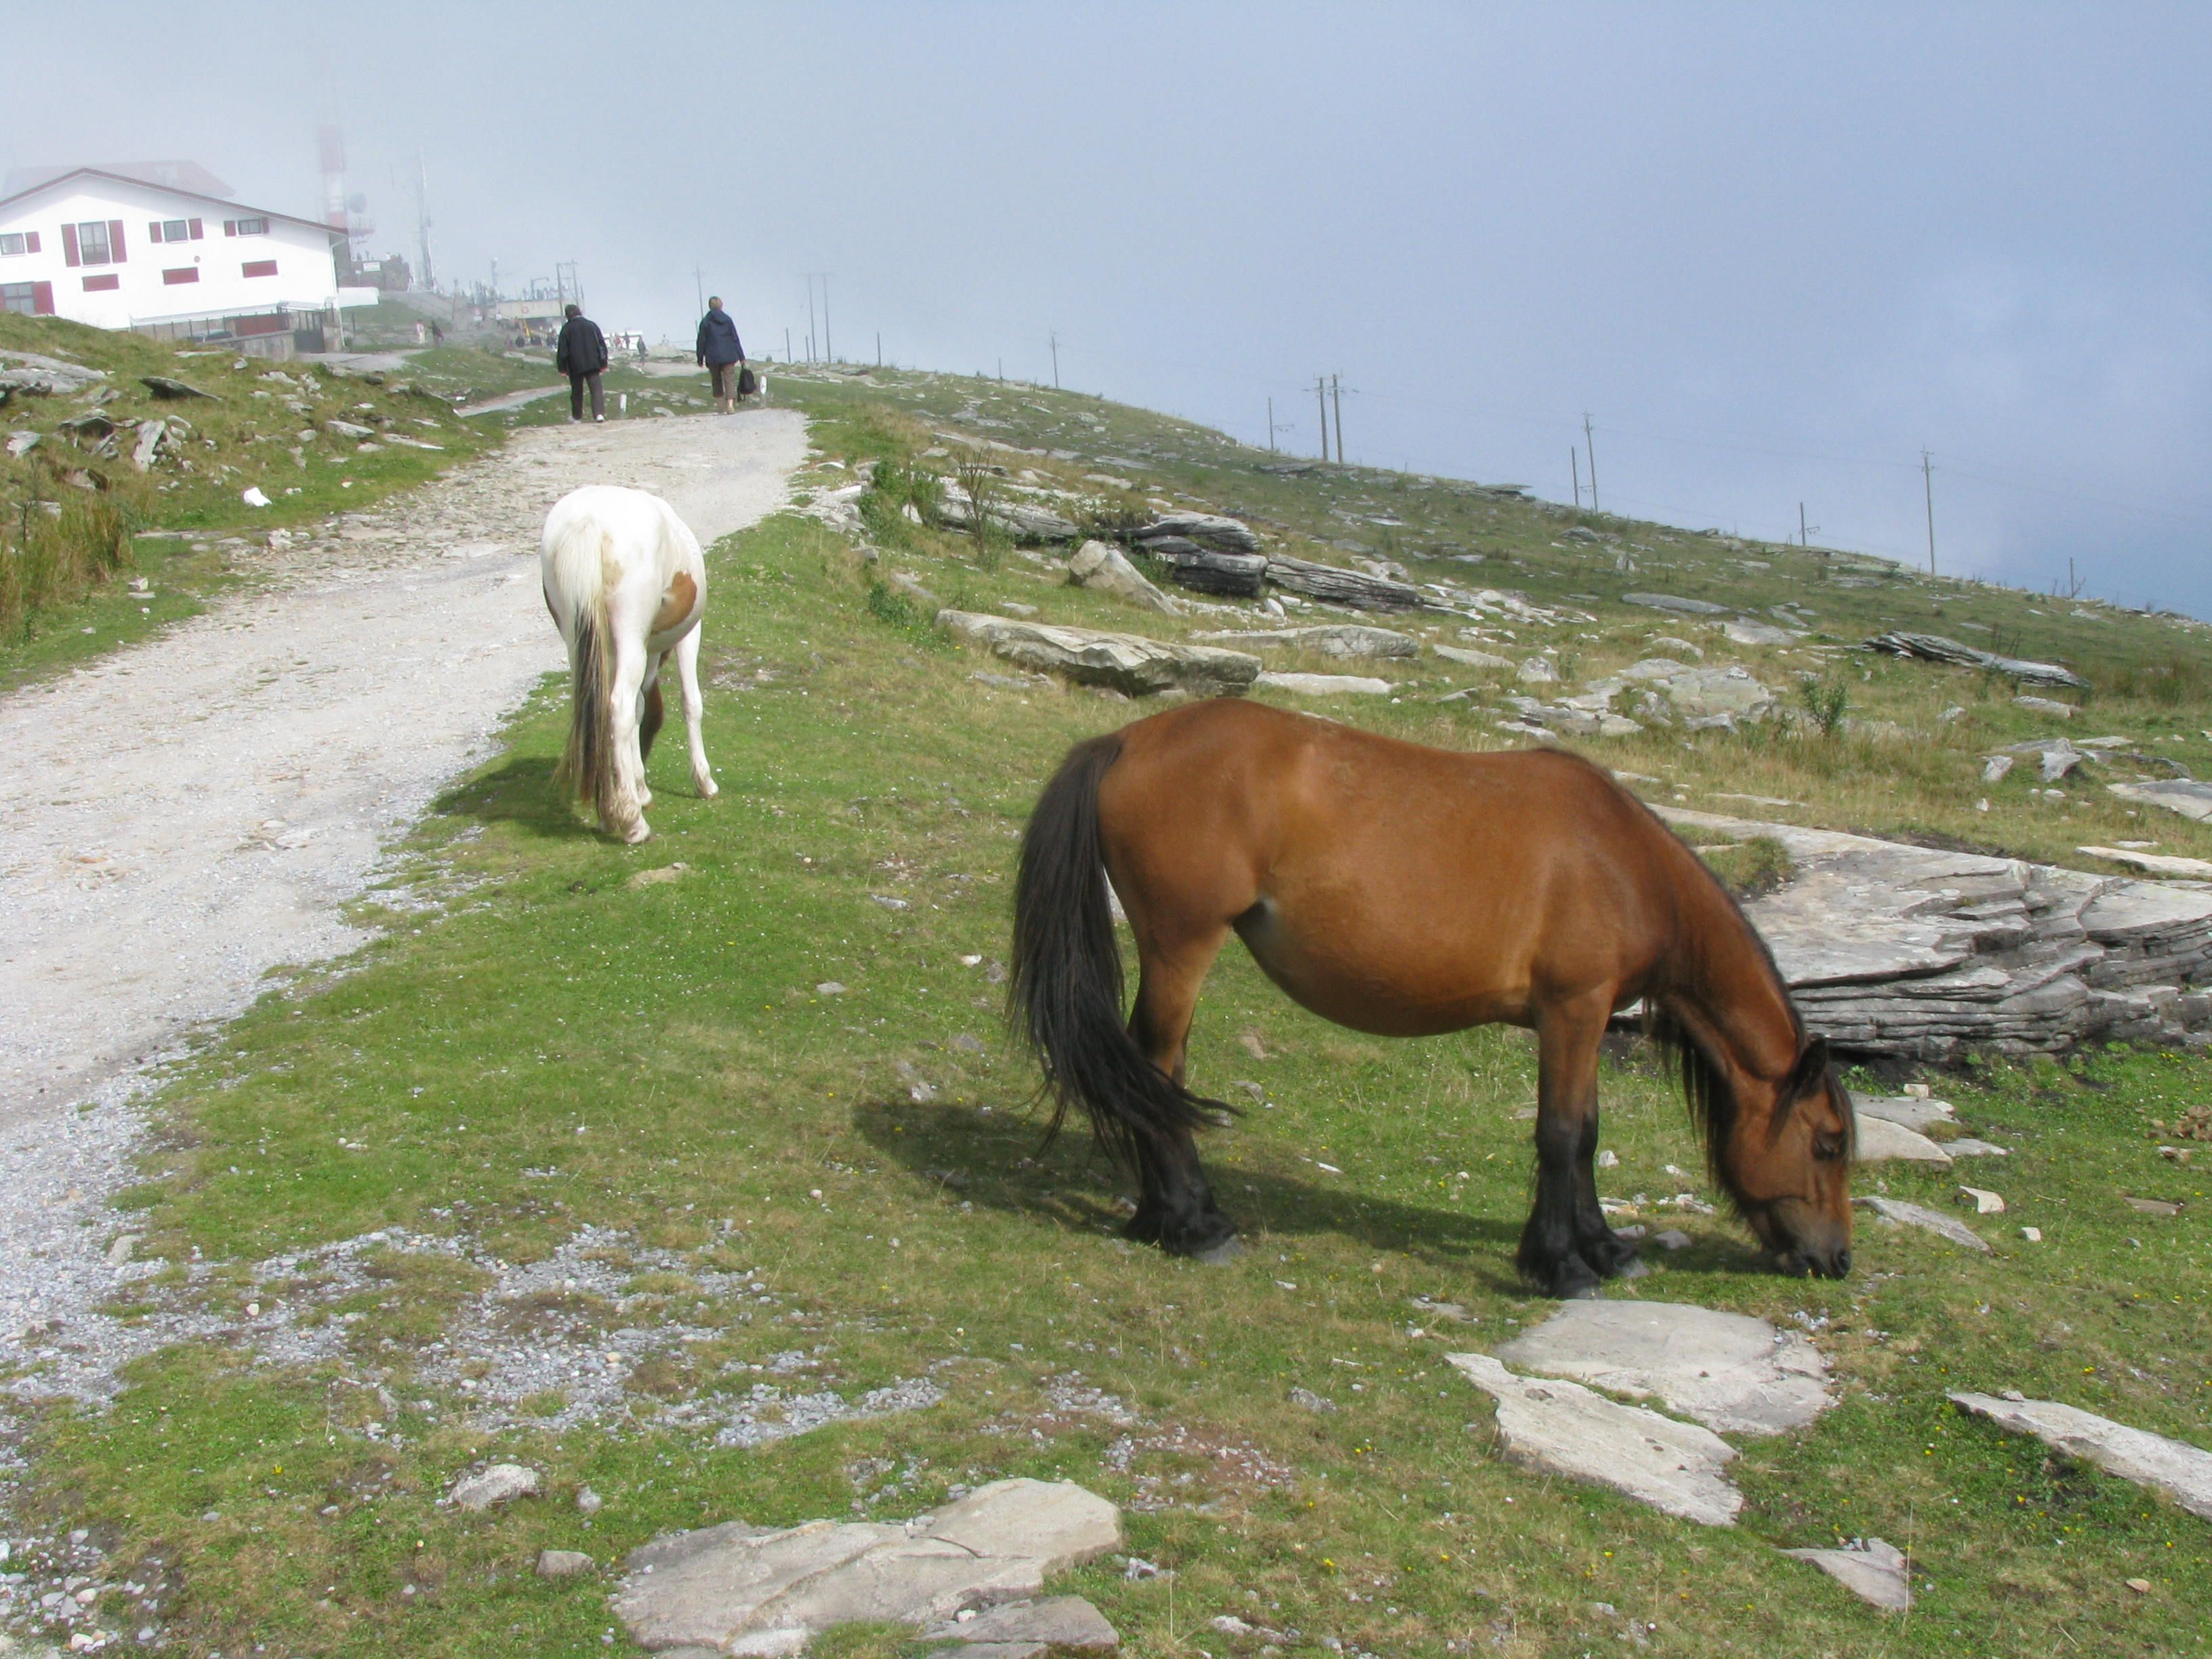 Pottok ponies on La Rhune - these are specific to the Basque region